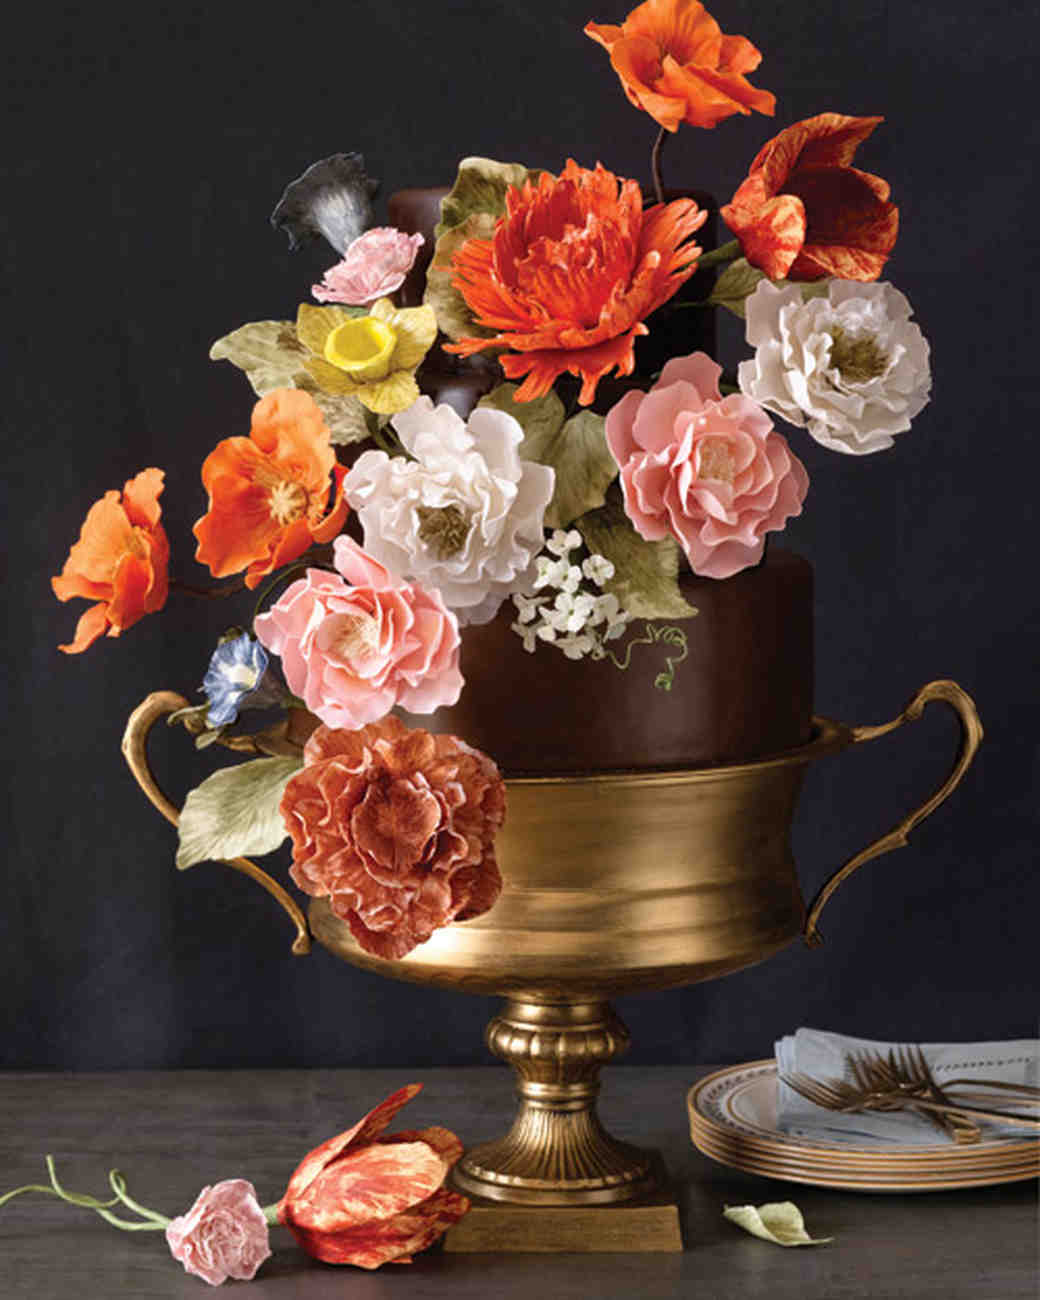 Gumpaste Flowers For Wedding Cakes: 45 Wedding Cakes With Sugar Flowers That Look Stunningly